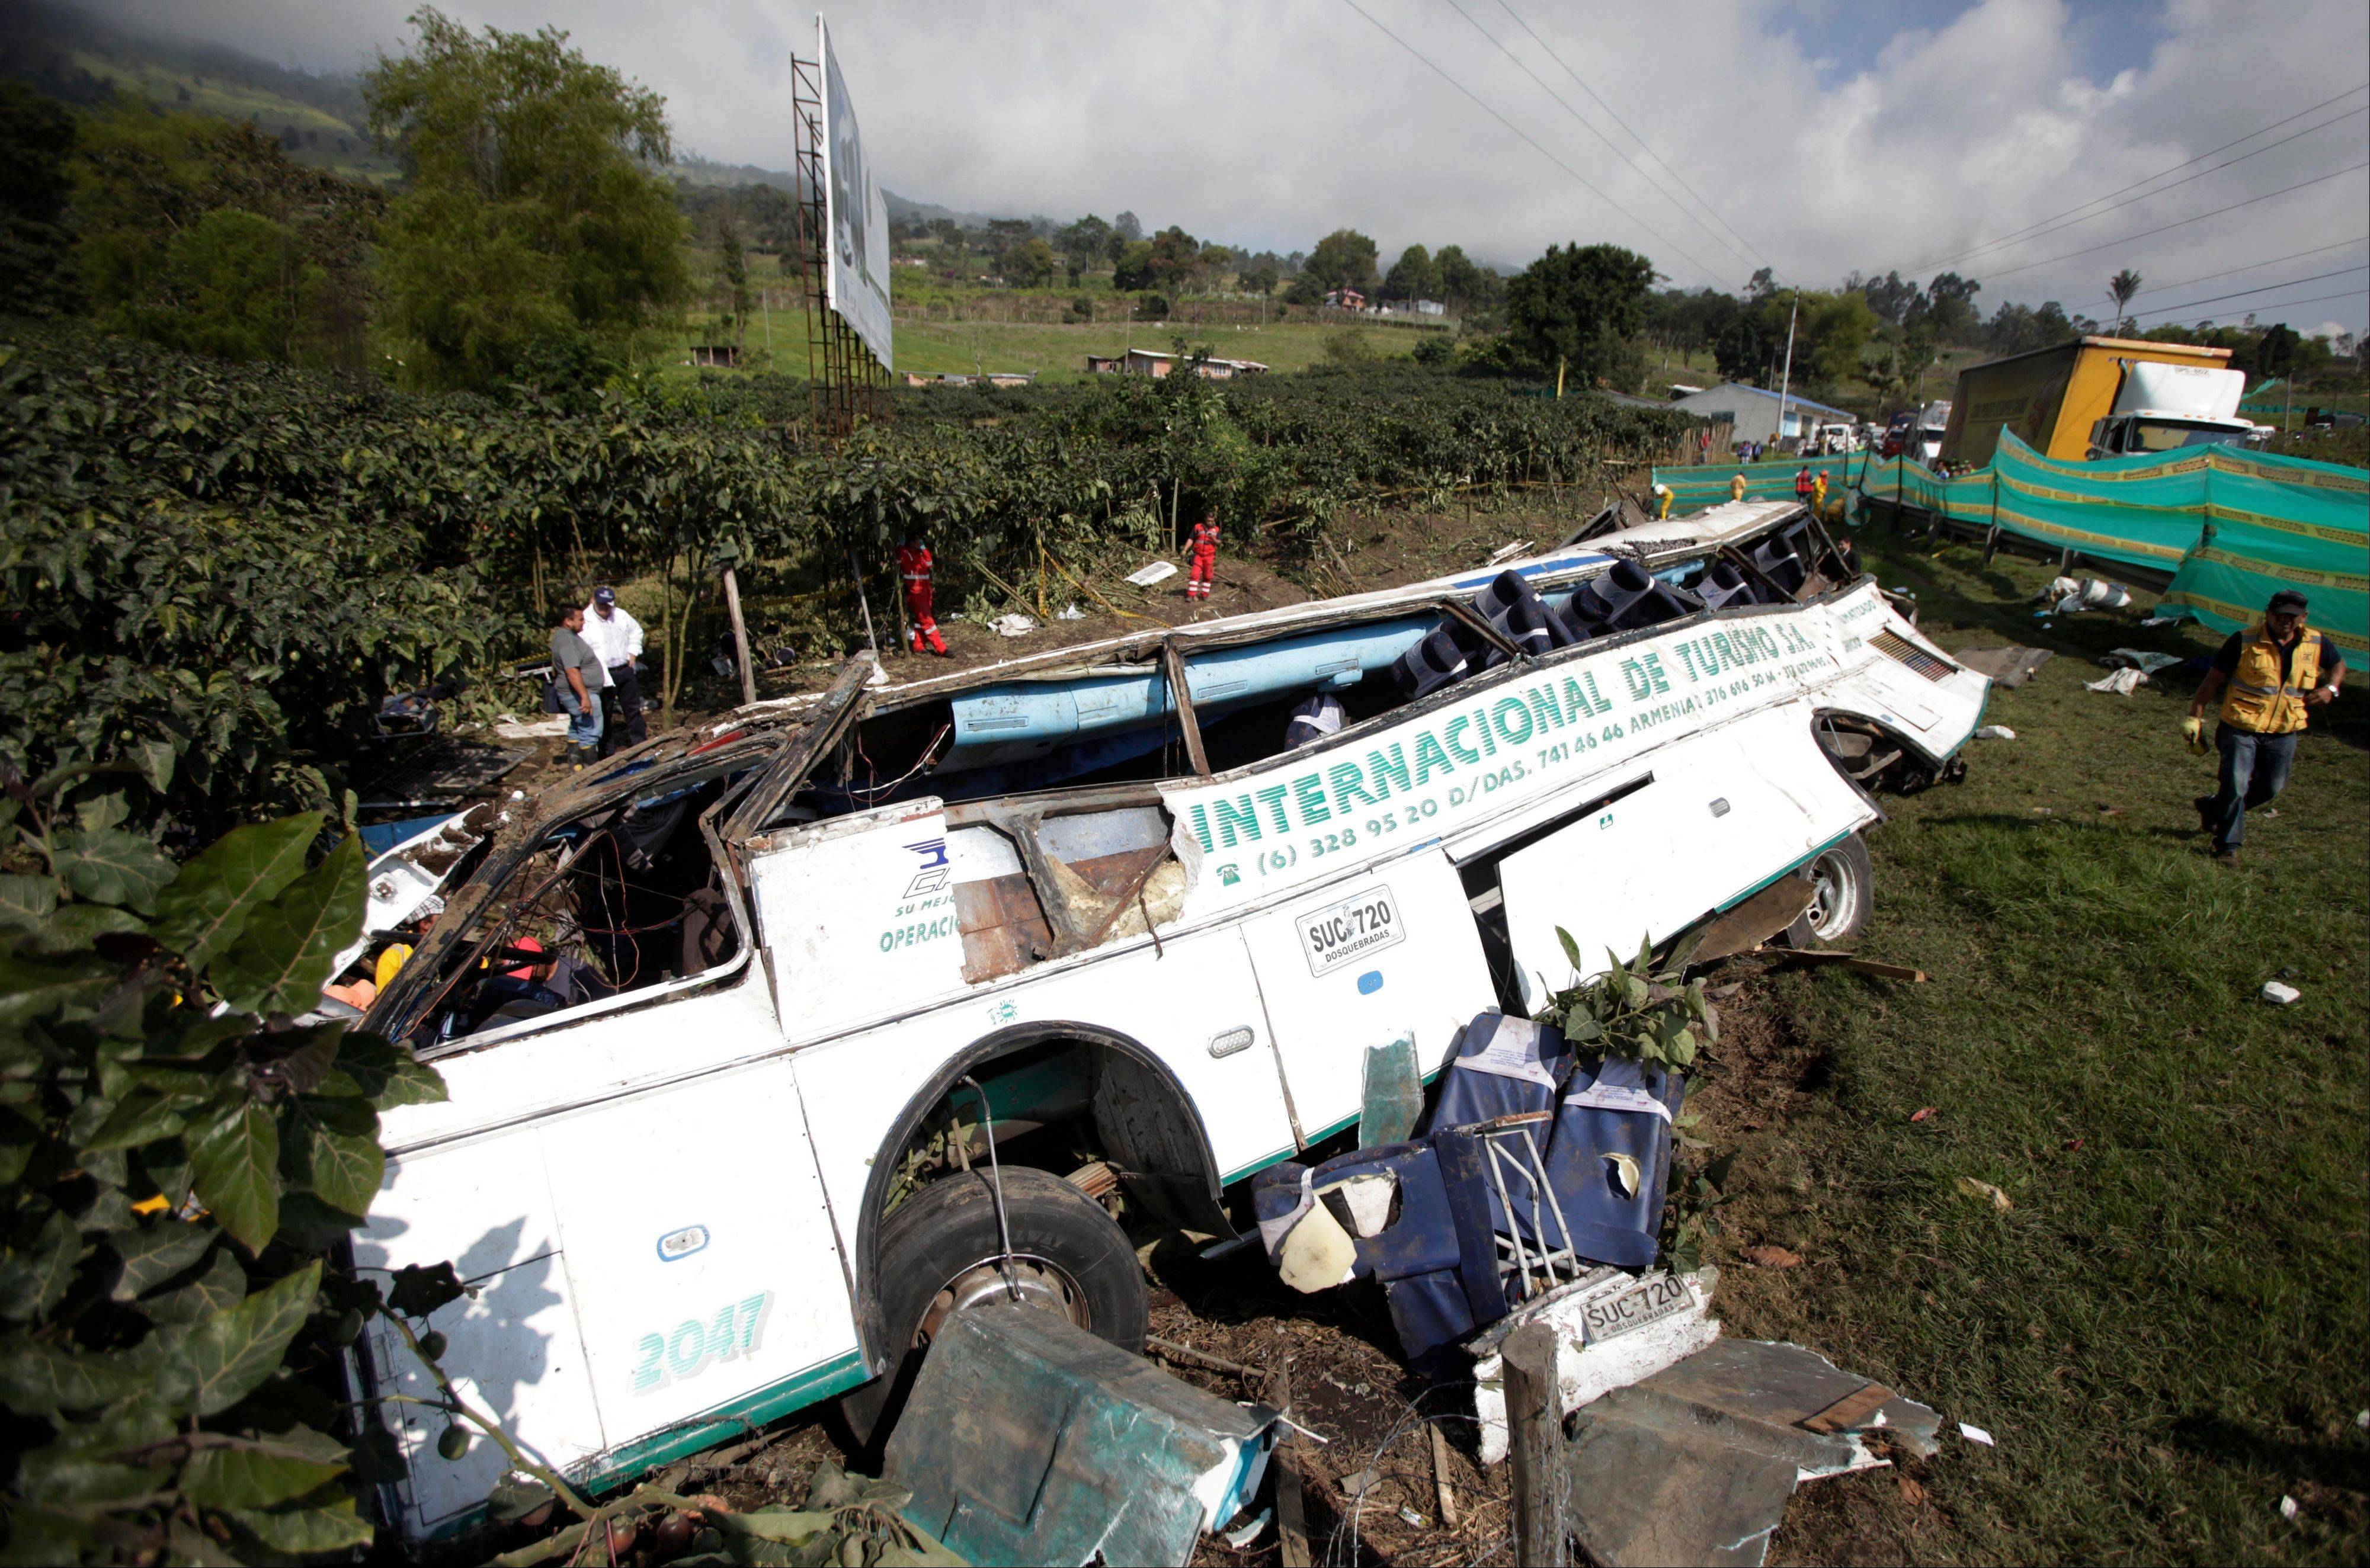 A charter bus that was in an single-vehicle accident lies on its side in San Raimundo, near Bogota, Colombia, Monday. The accident resulted in the death of at least 26 passengers and another 15 wounded.